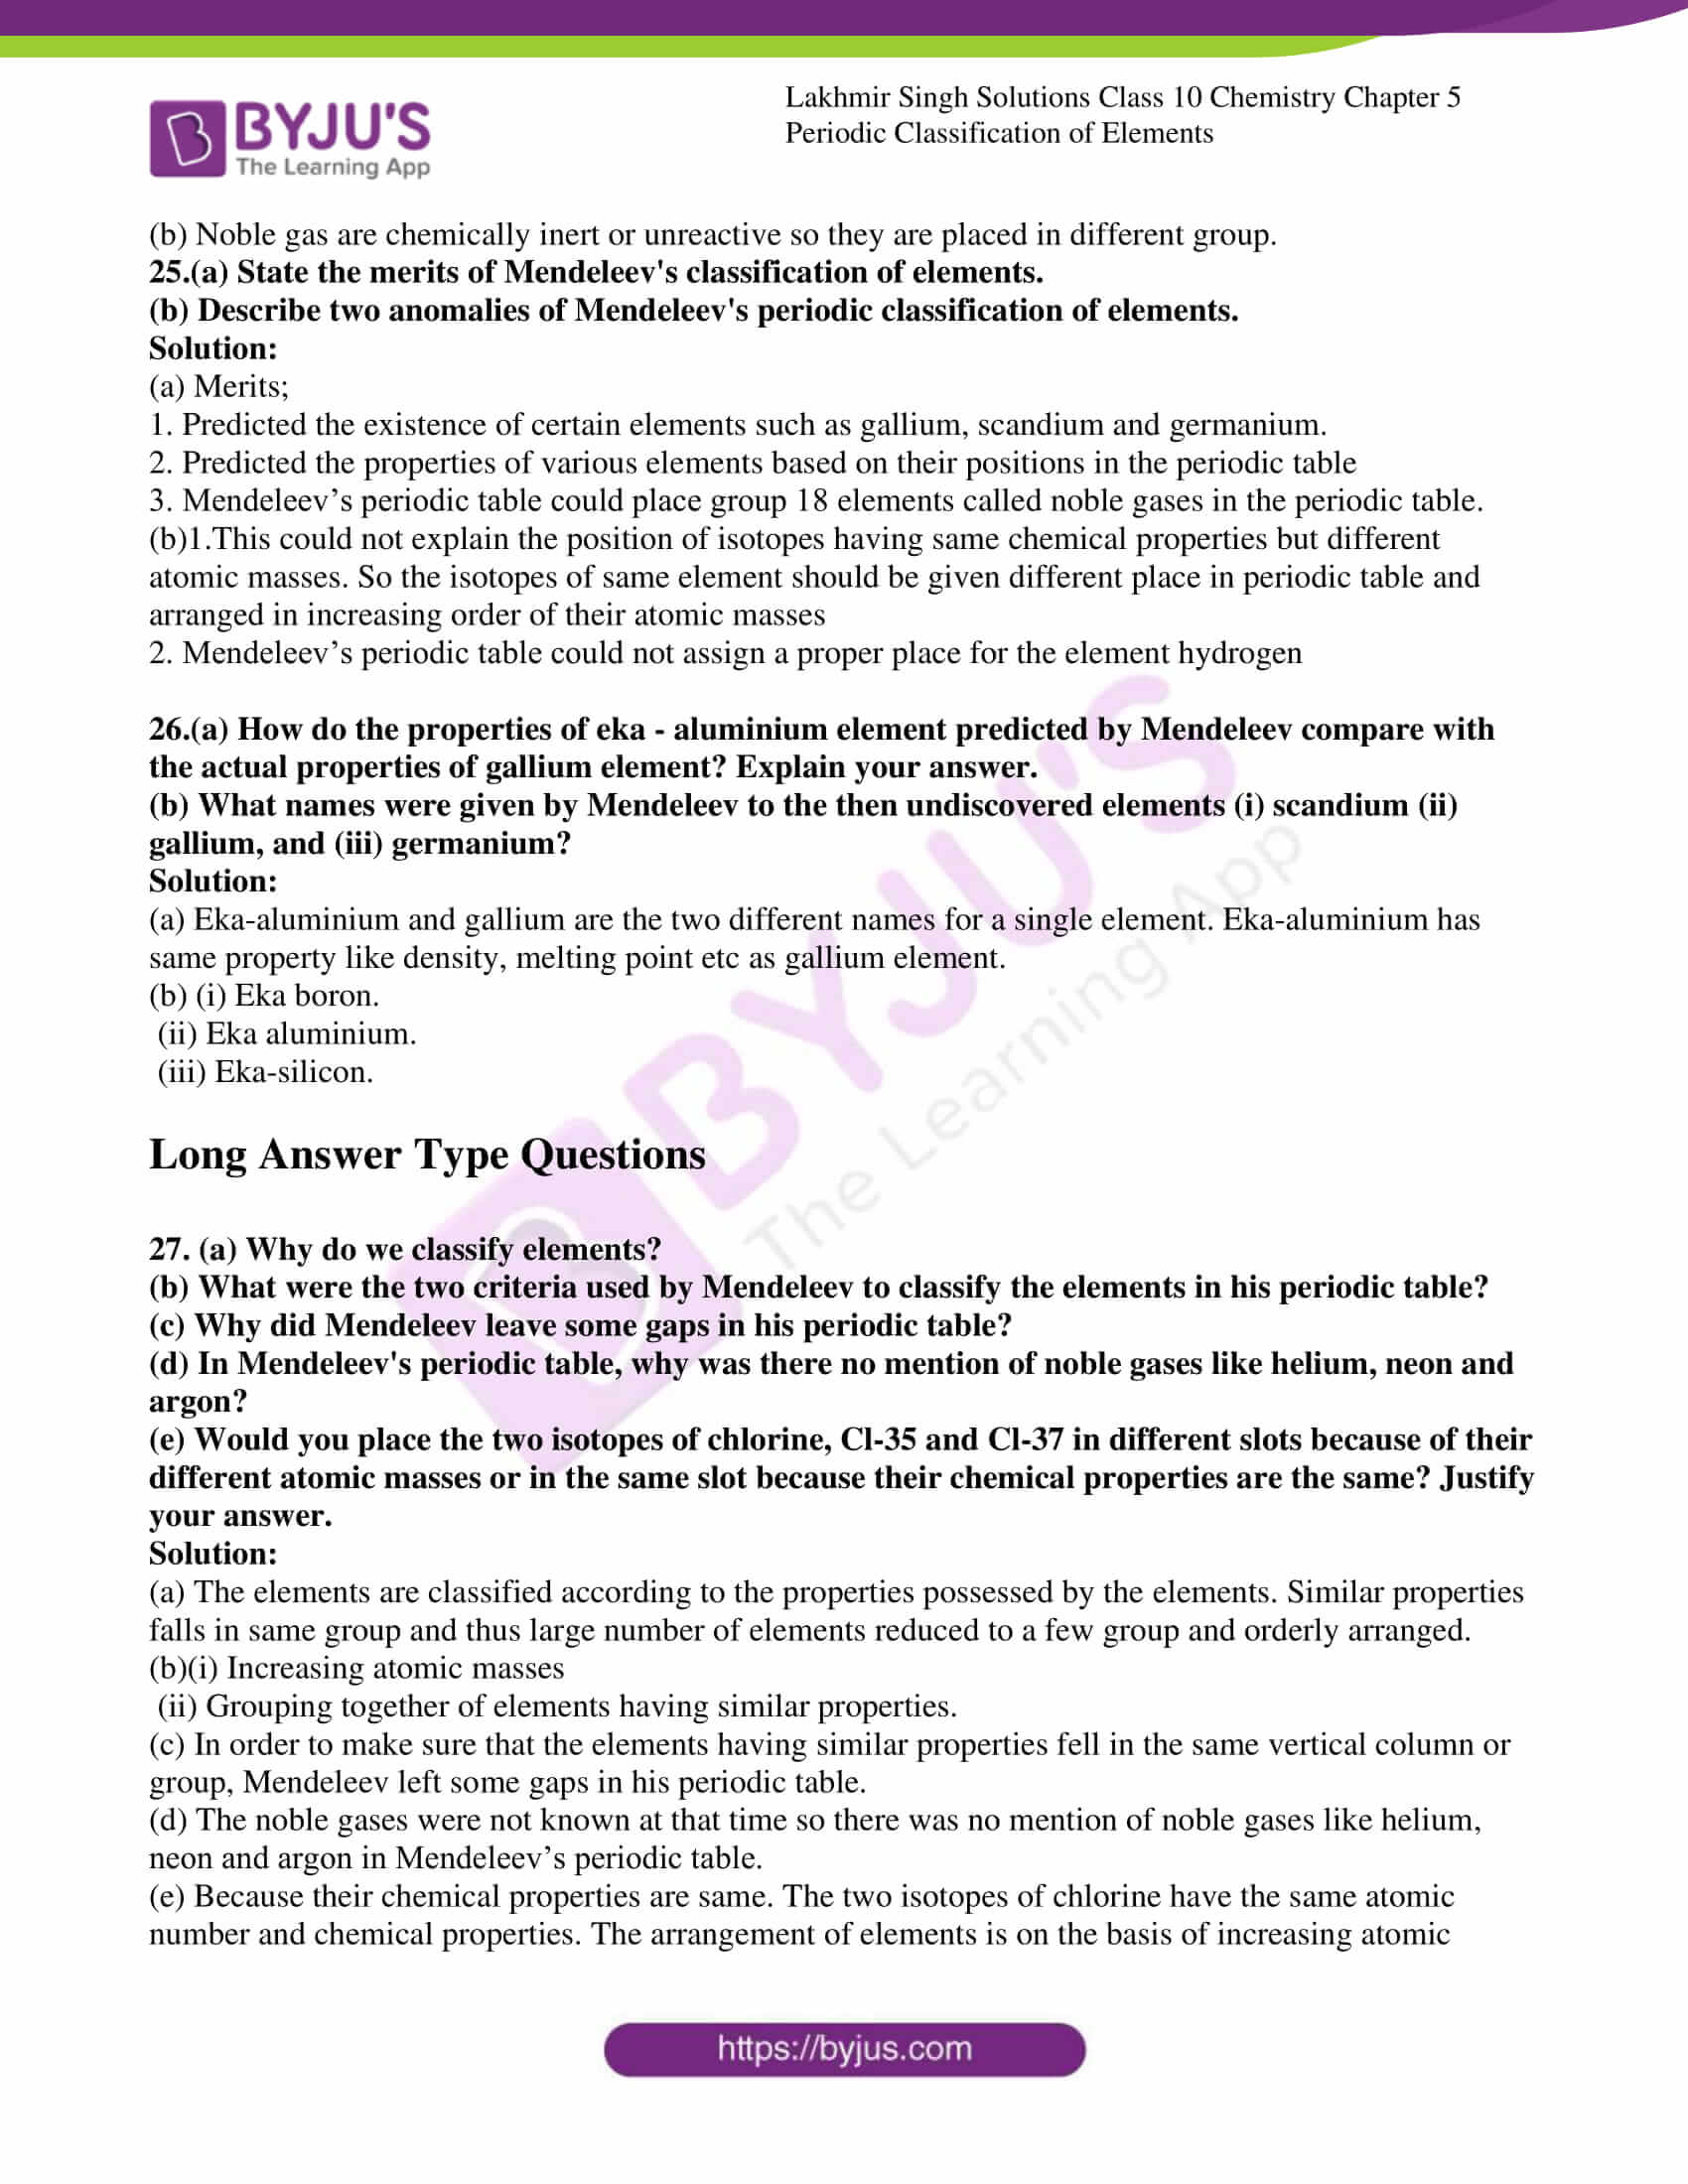 lakhmir singh solutions class 10 chemistry chapter 5 06